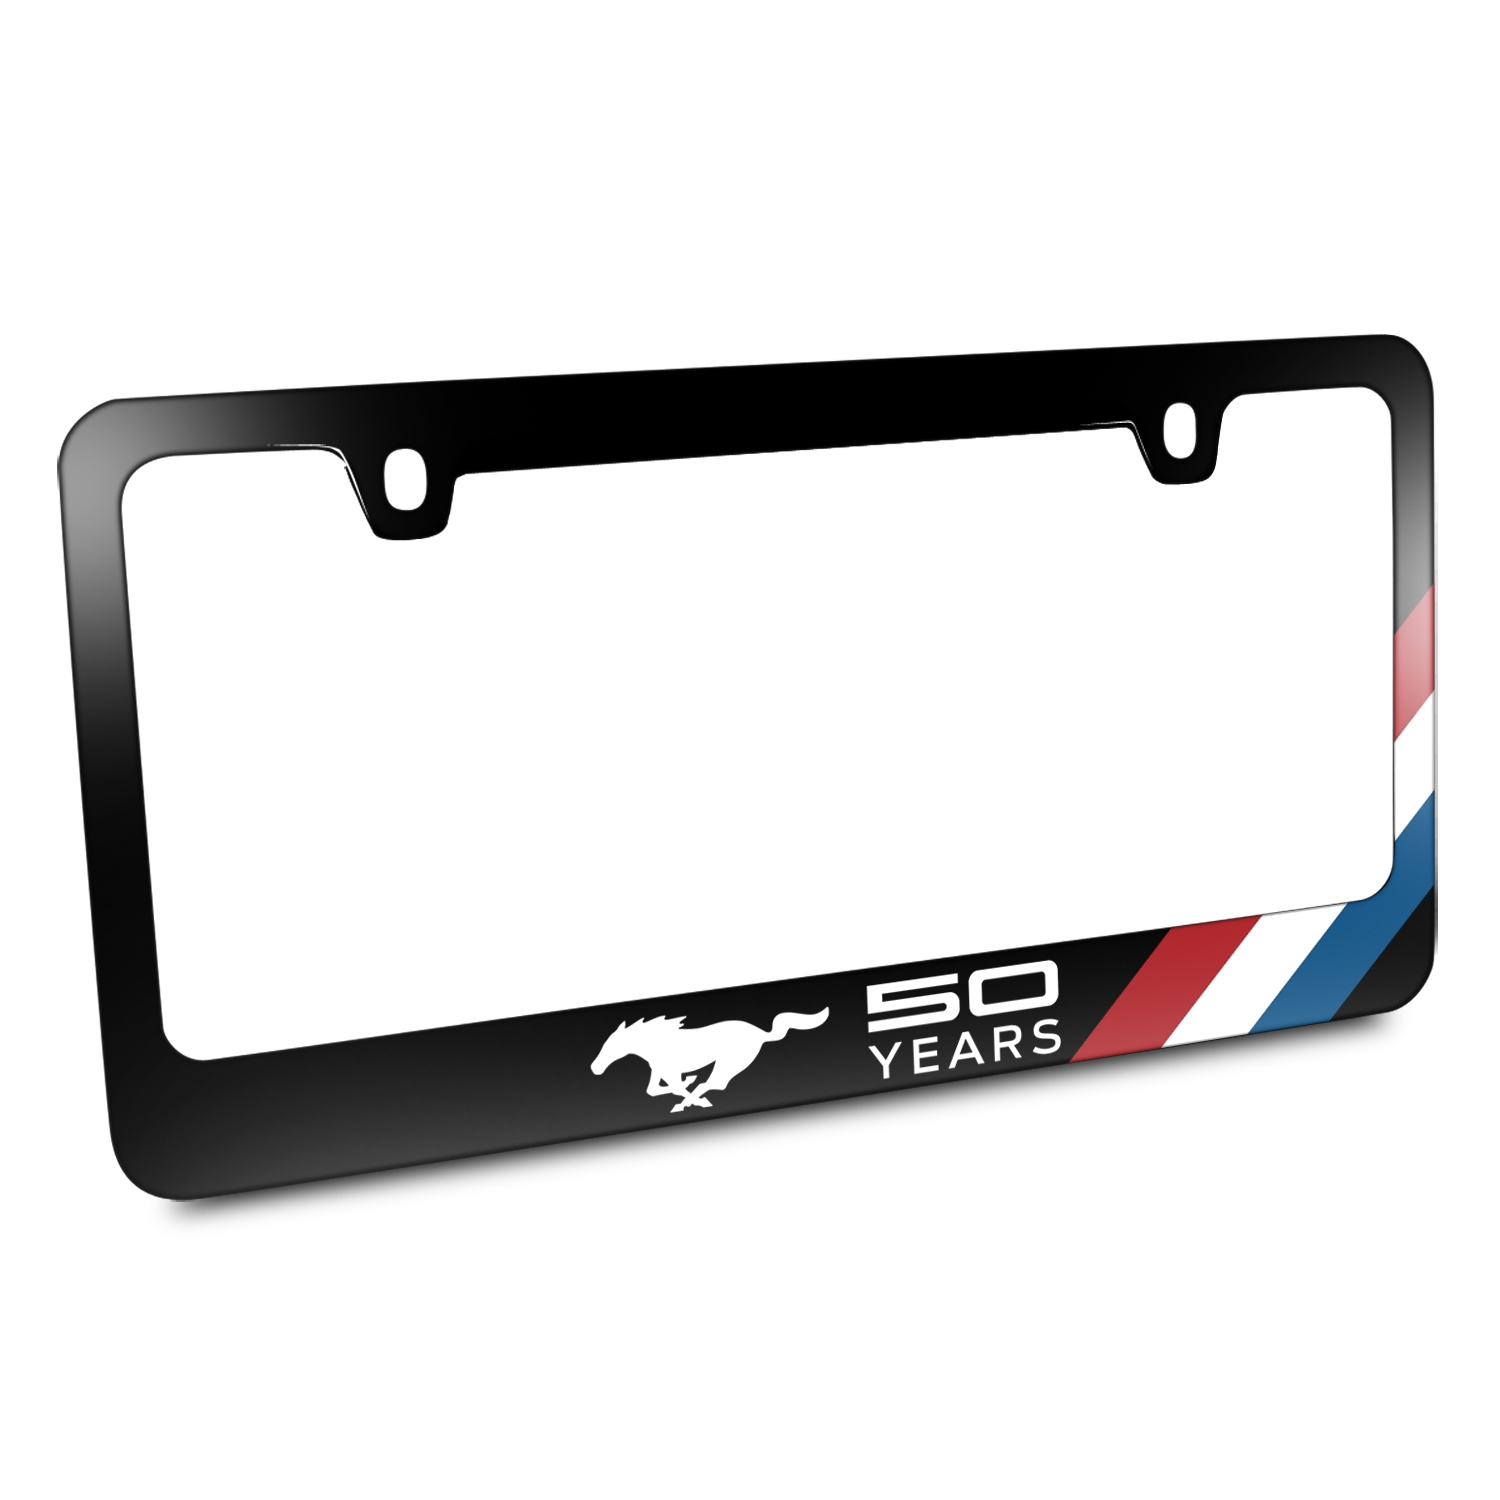 Ford Mustang 50 Years Tri-Bar Sports Stripe Black Metal License Plate Frame